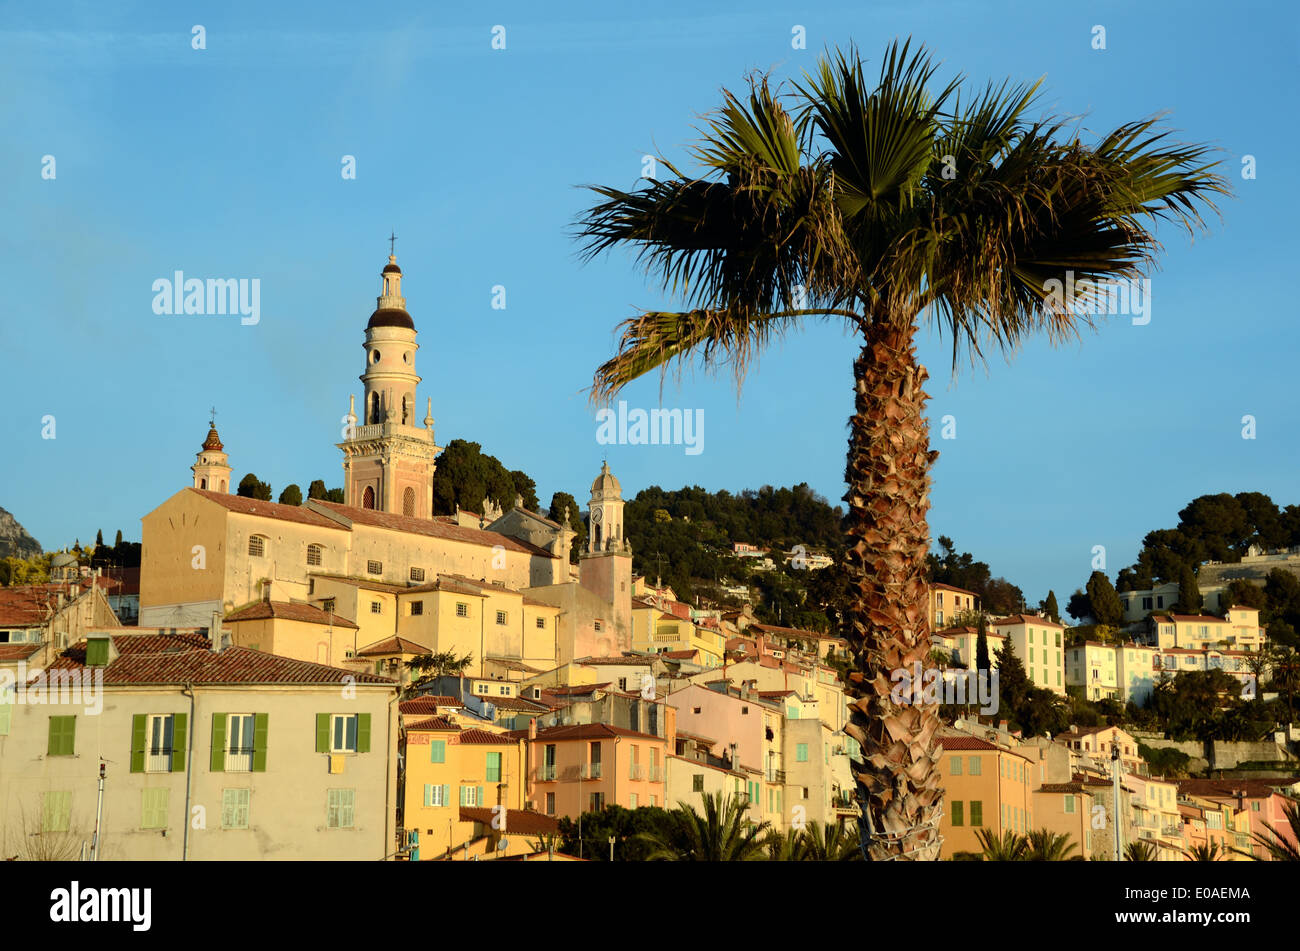 View of Old Town Menton Alpes-Maritimes France - Stock Image